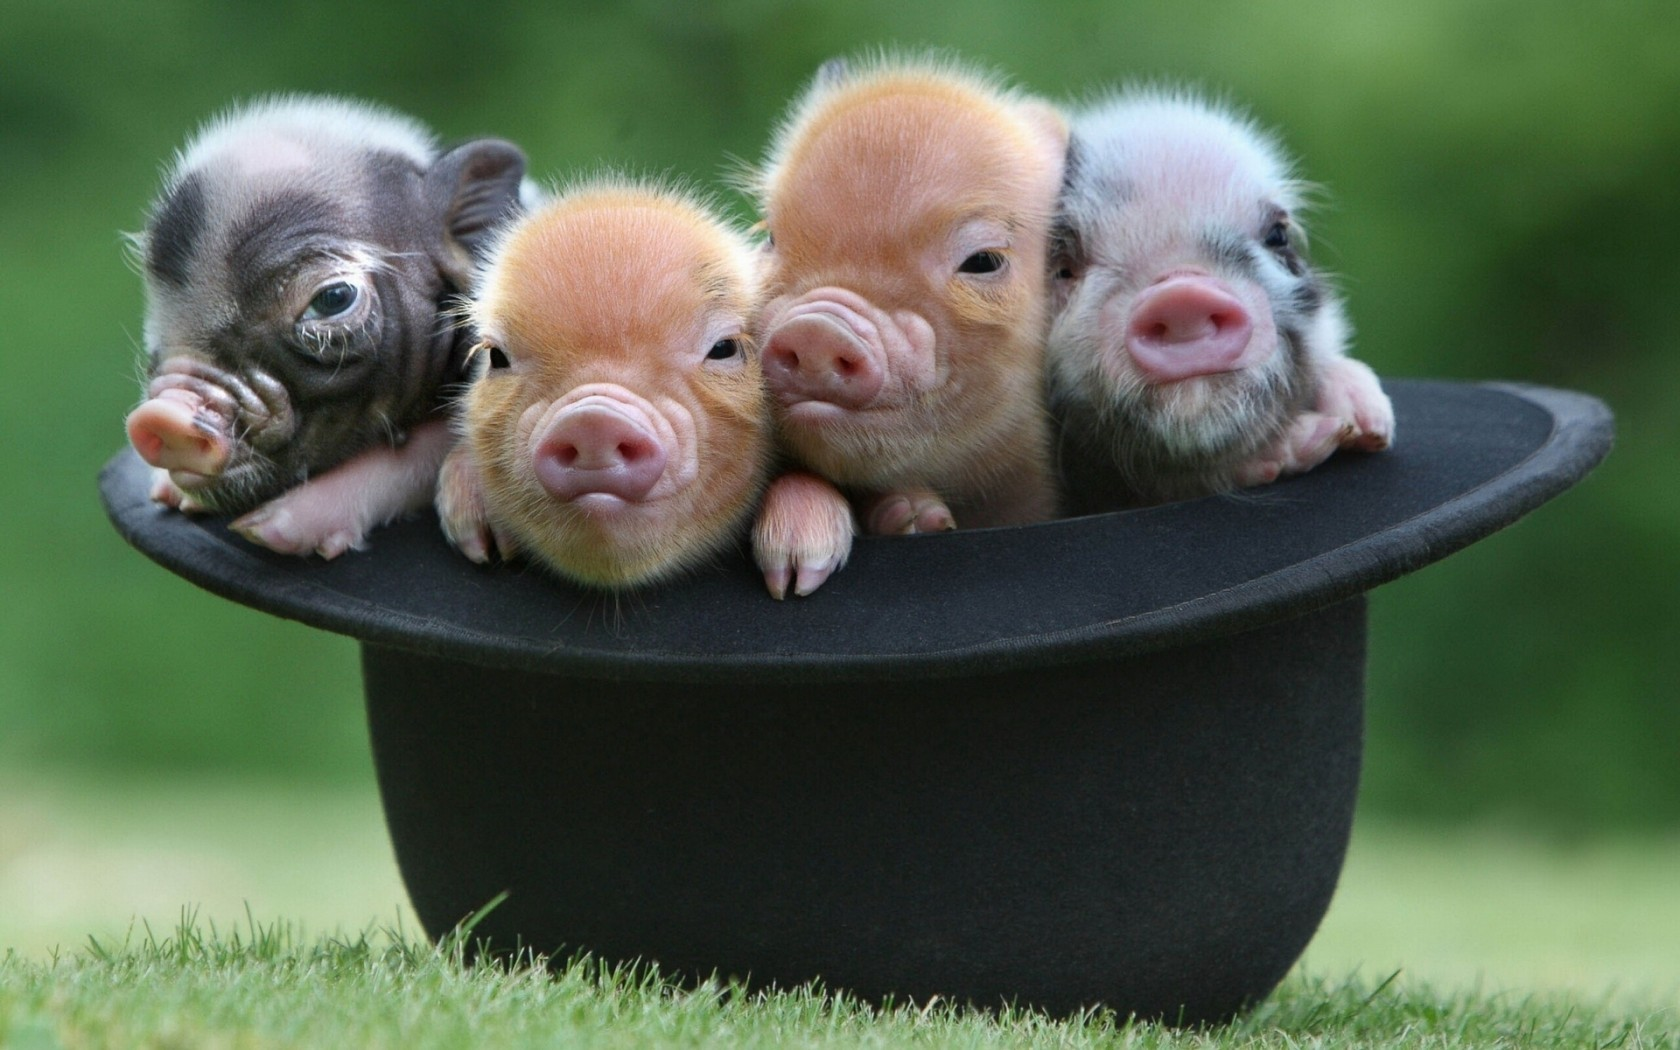 Cover Image Credit Independenceeventscenter Wp Content Uploads 2016 12 Teacup Pigs